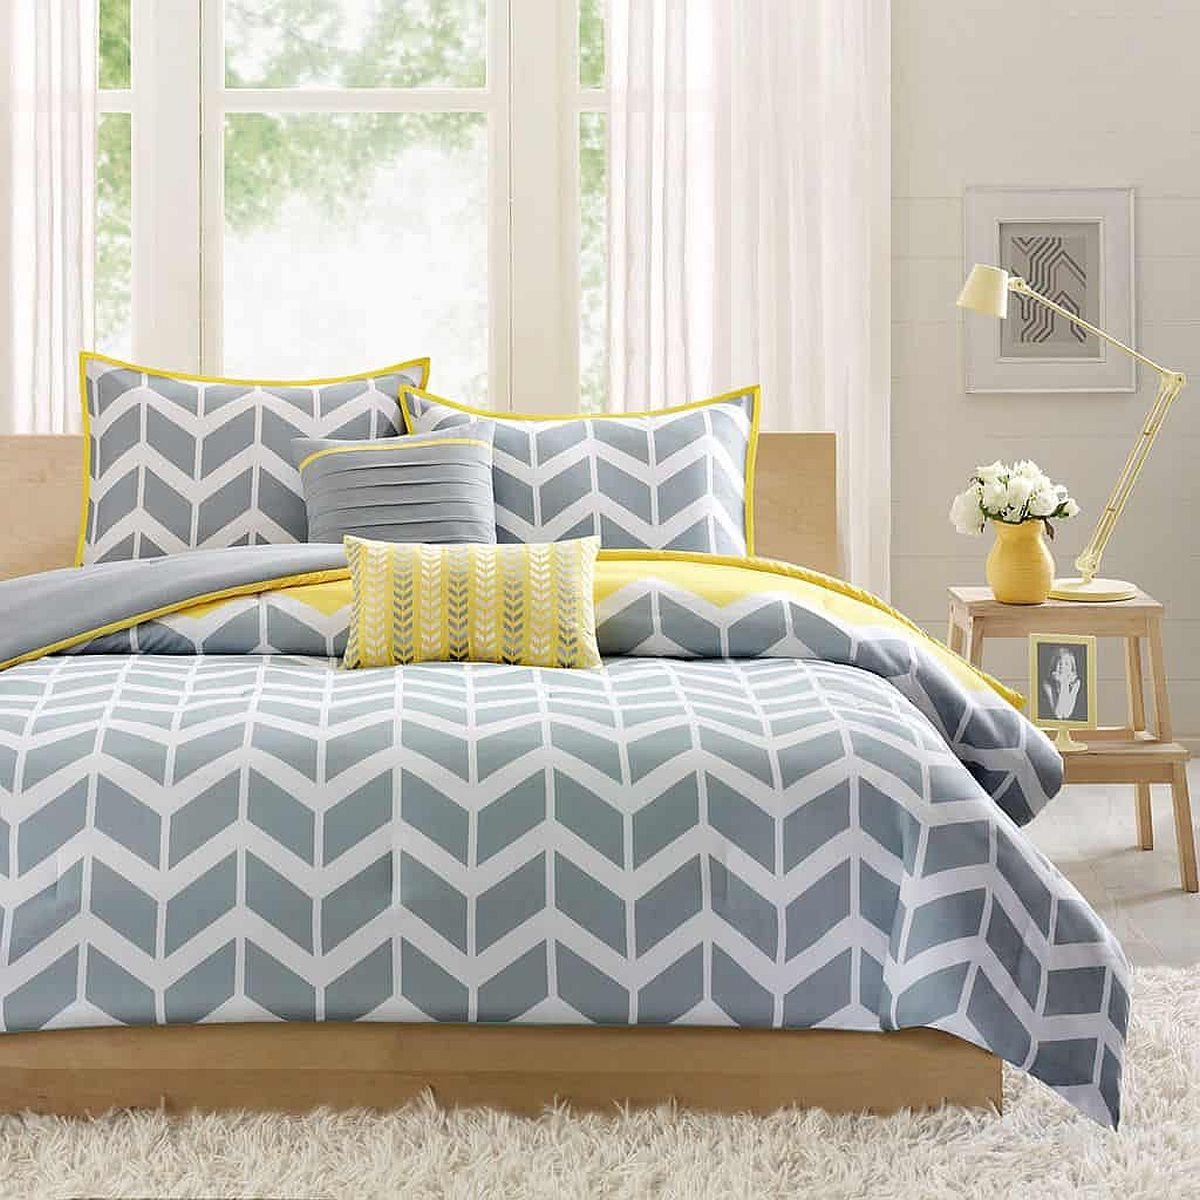 Fabulous-gray-and-yellow-bediing-with-chevron-design-brings-both-color-and-pattern-to-this-bedroom-in-white-48392